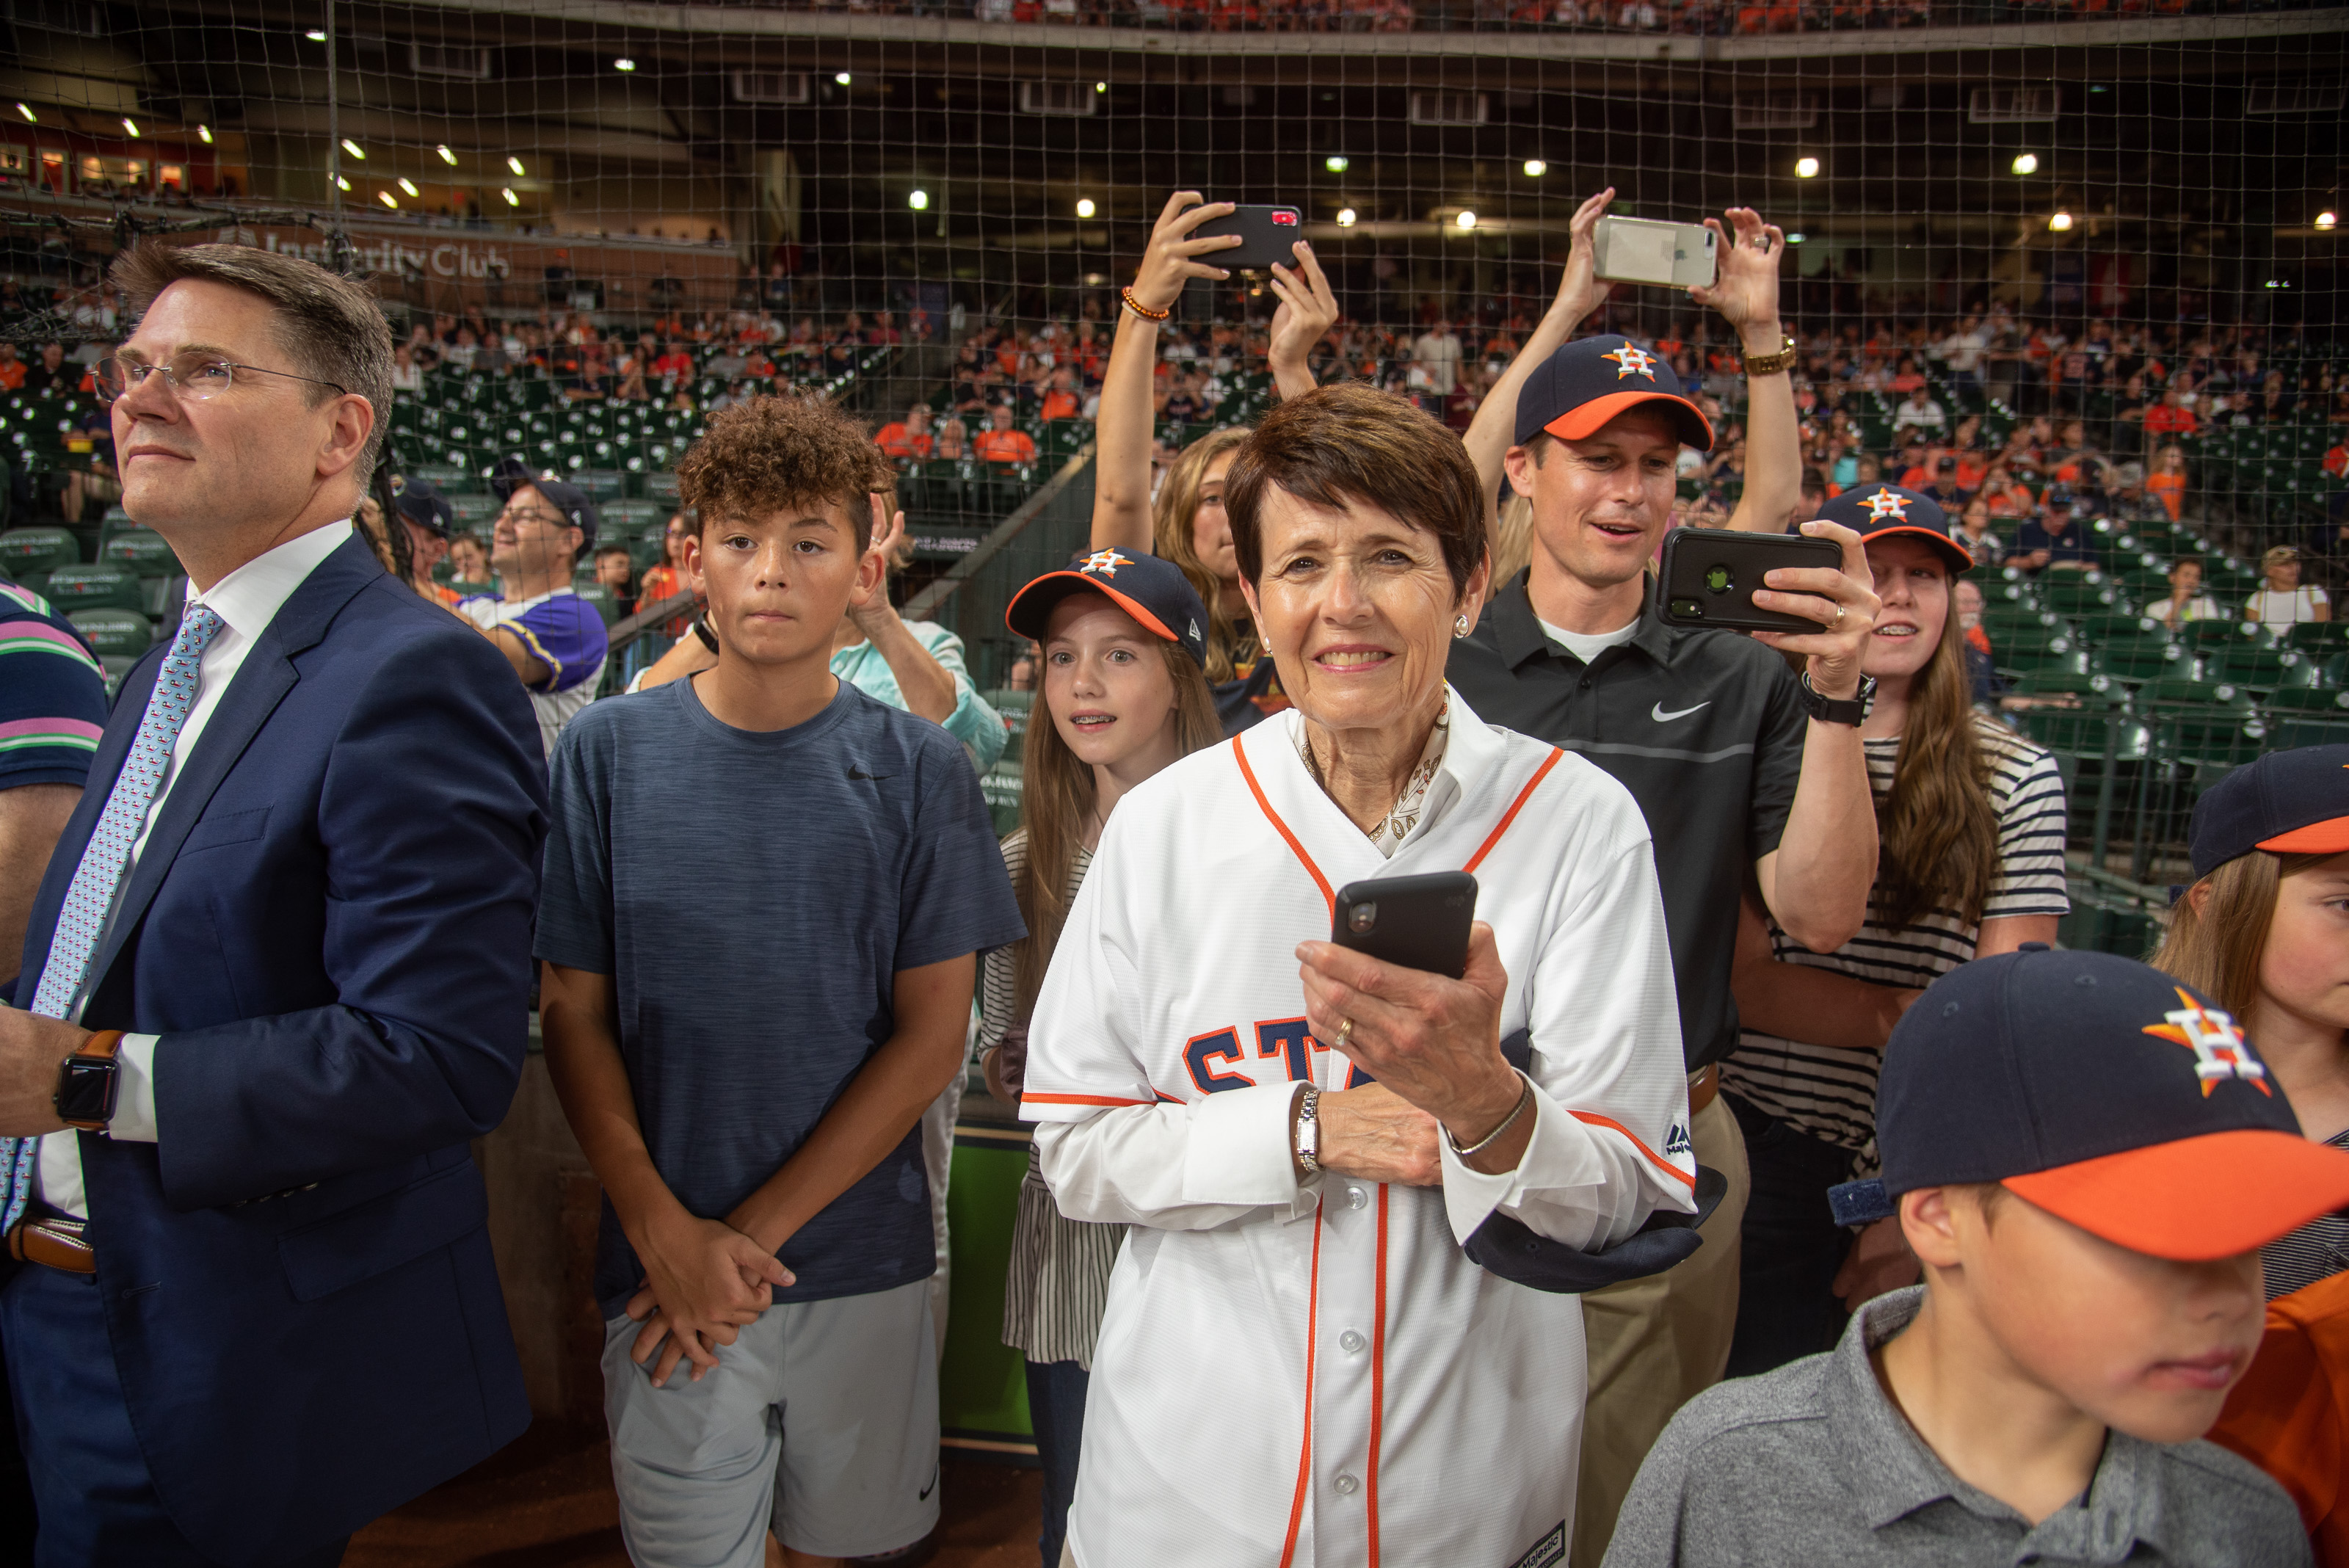 Sister Susan Bednar, with her family, waits as Elder David A. Bednar walks to the pitchers' mound.